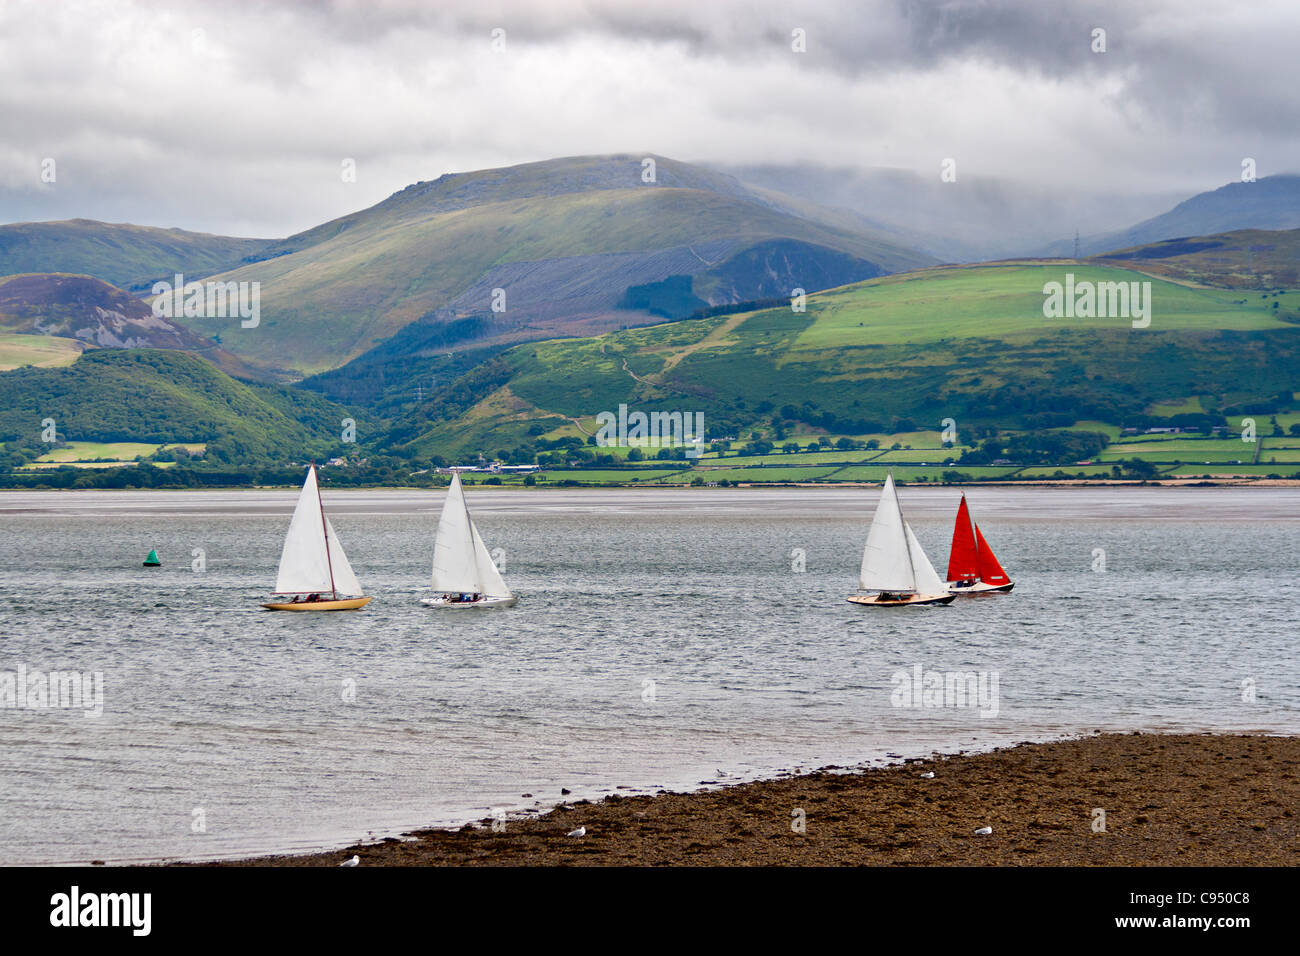 Sailboats in Anglesey, Wales - Stock Image